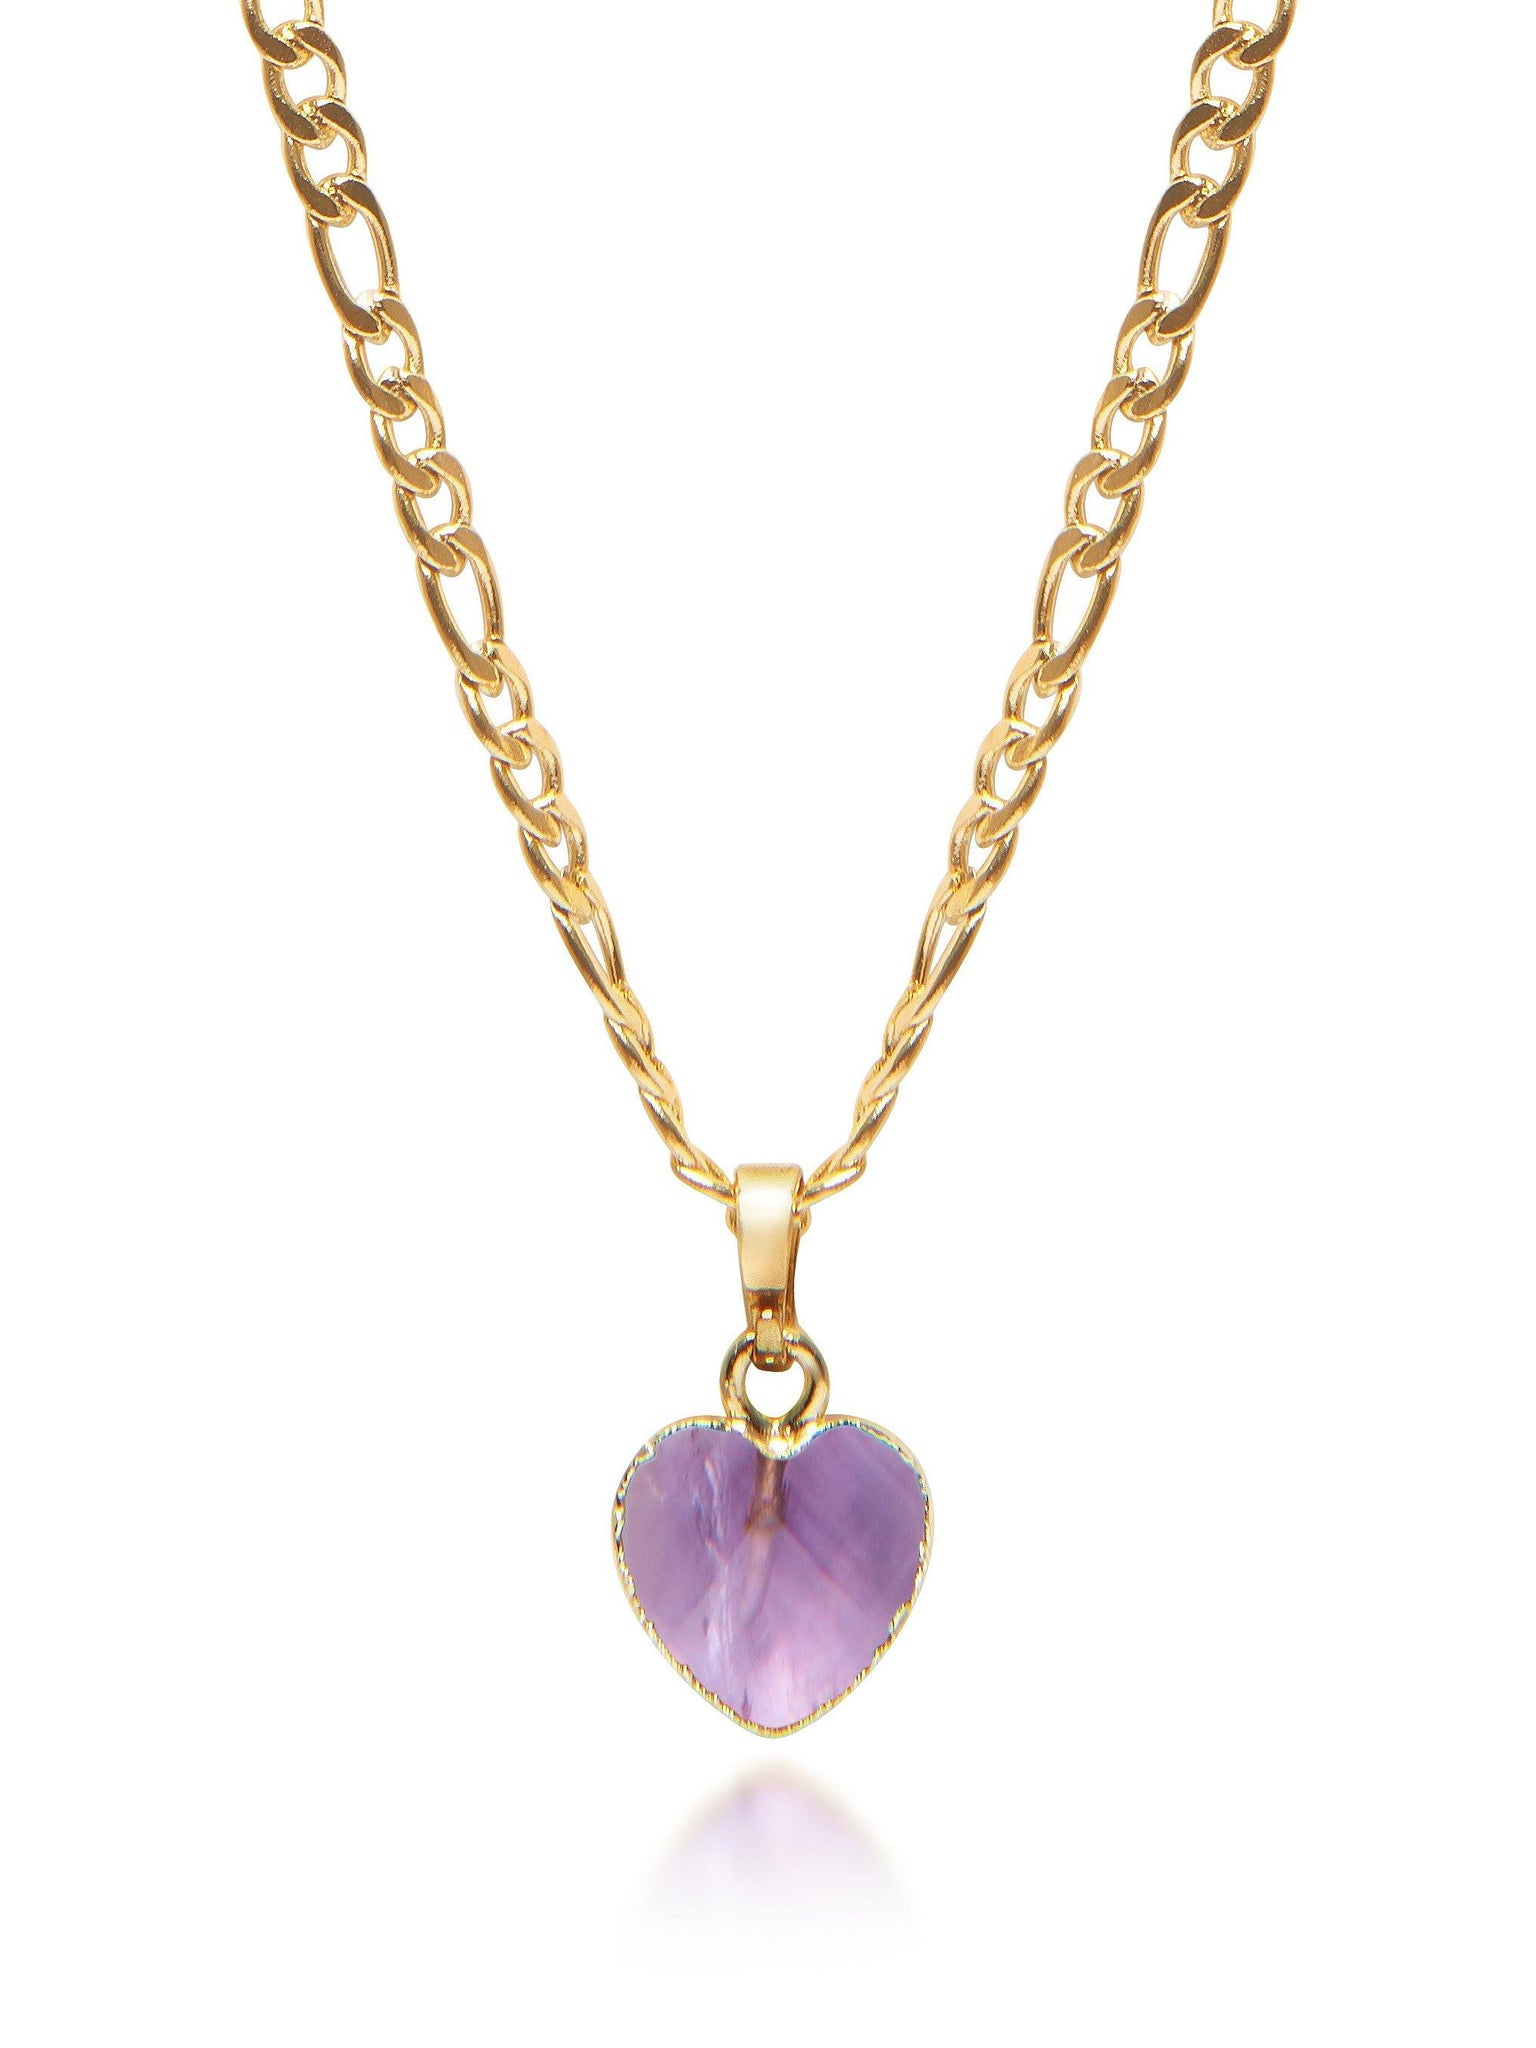 Women's Amethyst Heart Necklace - Nialaya Jewelry